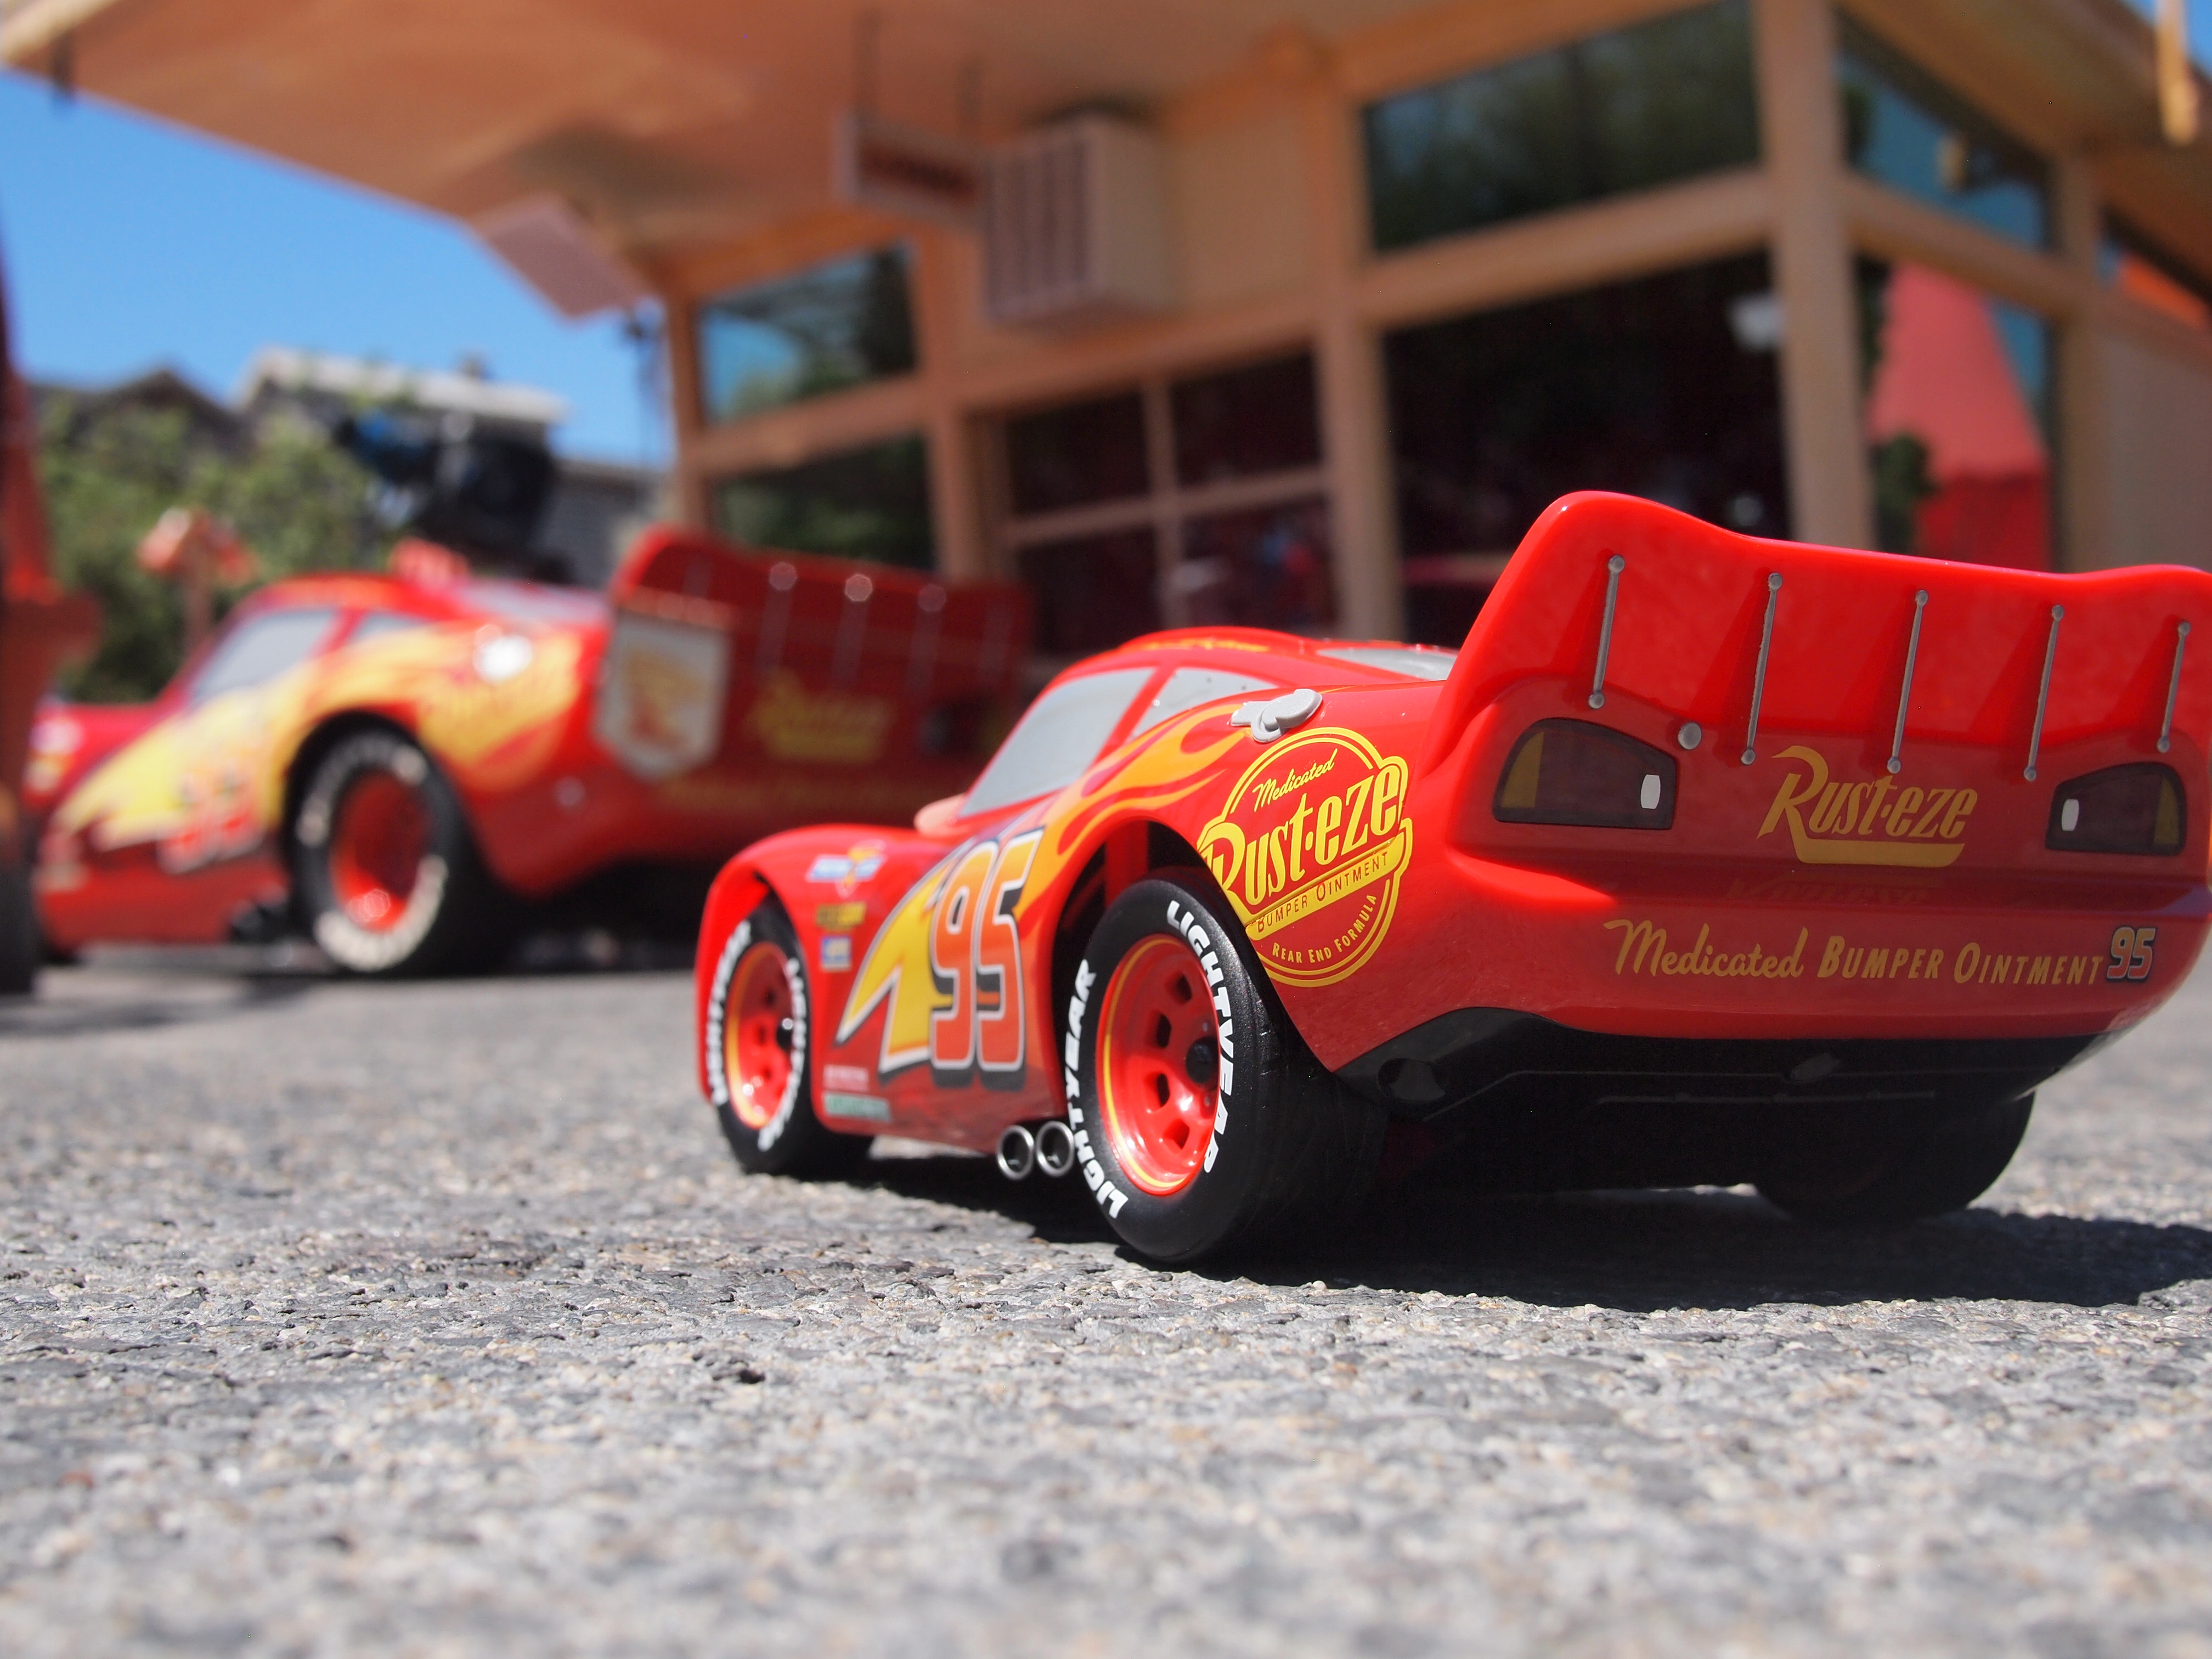 We took the most lifelike Lightning McQueen toy to Cars Land and had a photoshoot & We took the most lifelike Lightning McQueen toy to Cars Land and had ...